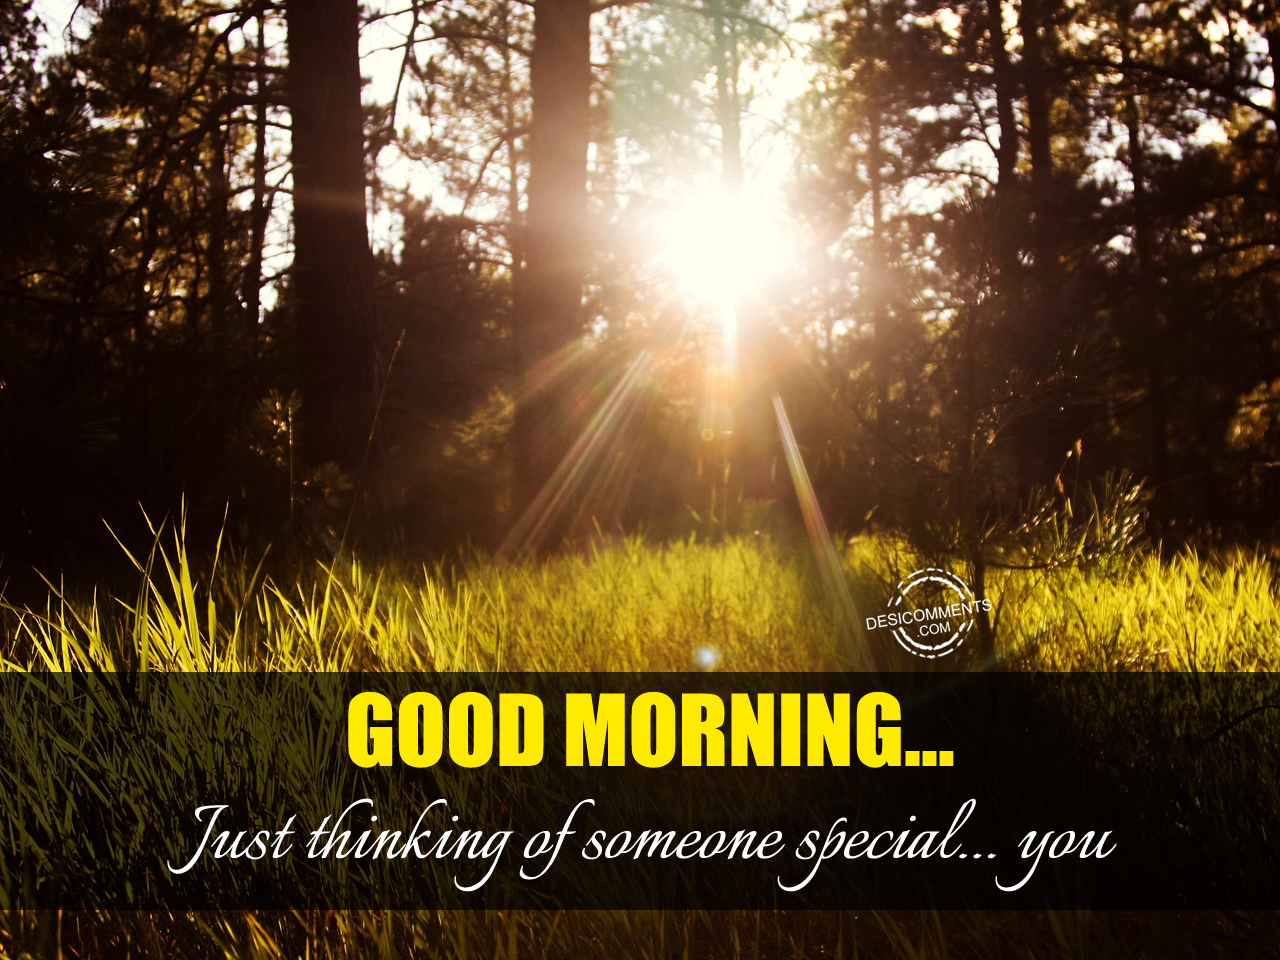 Good Morning Just Thinking Of Someone Special You Desicommentscom